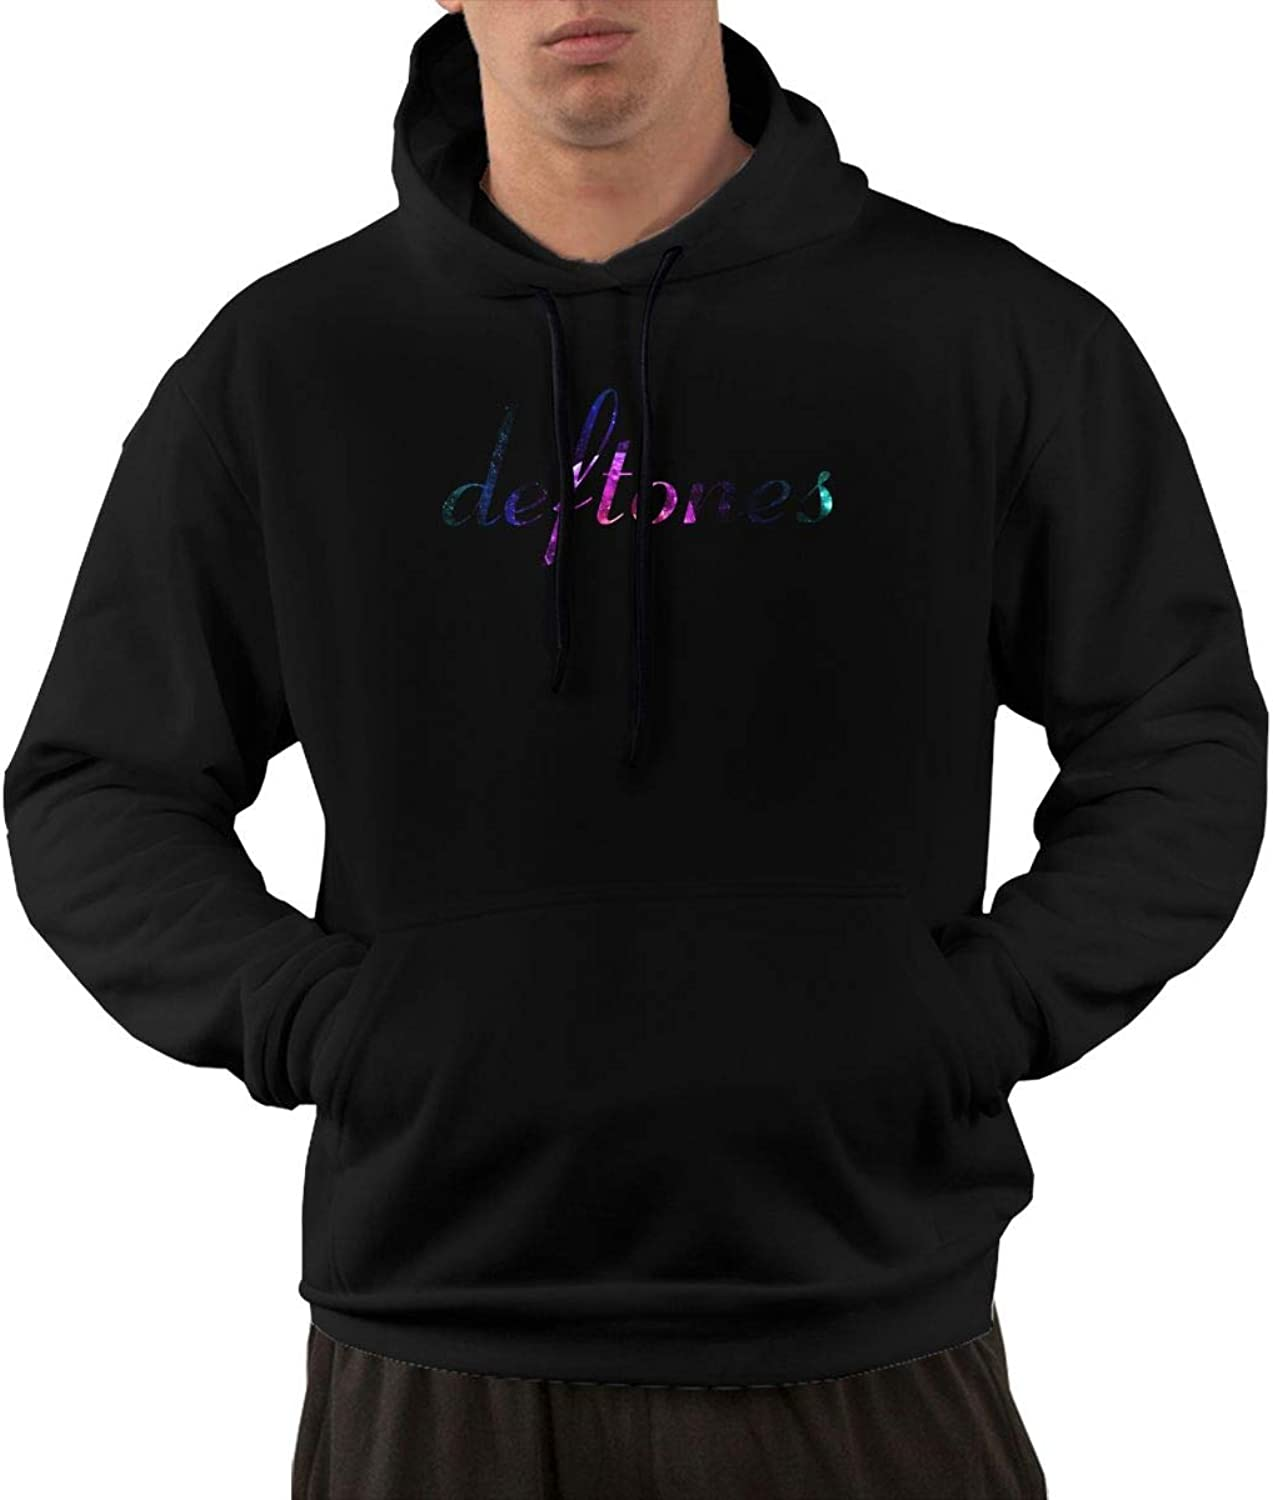 NolanO Deftones Mens Hoodies Hoodie With Pocket Black